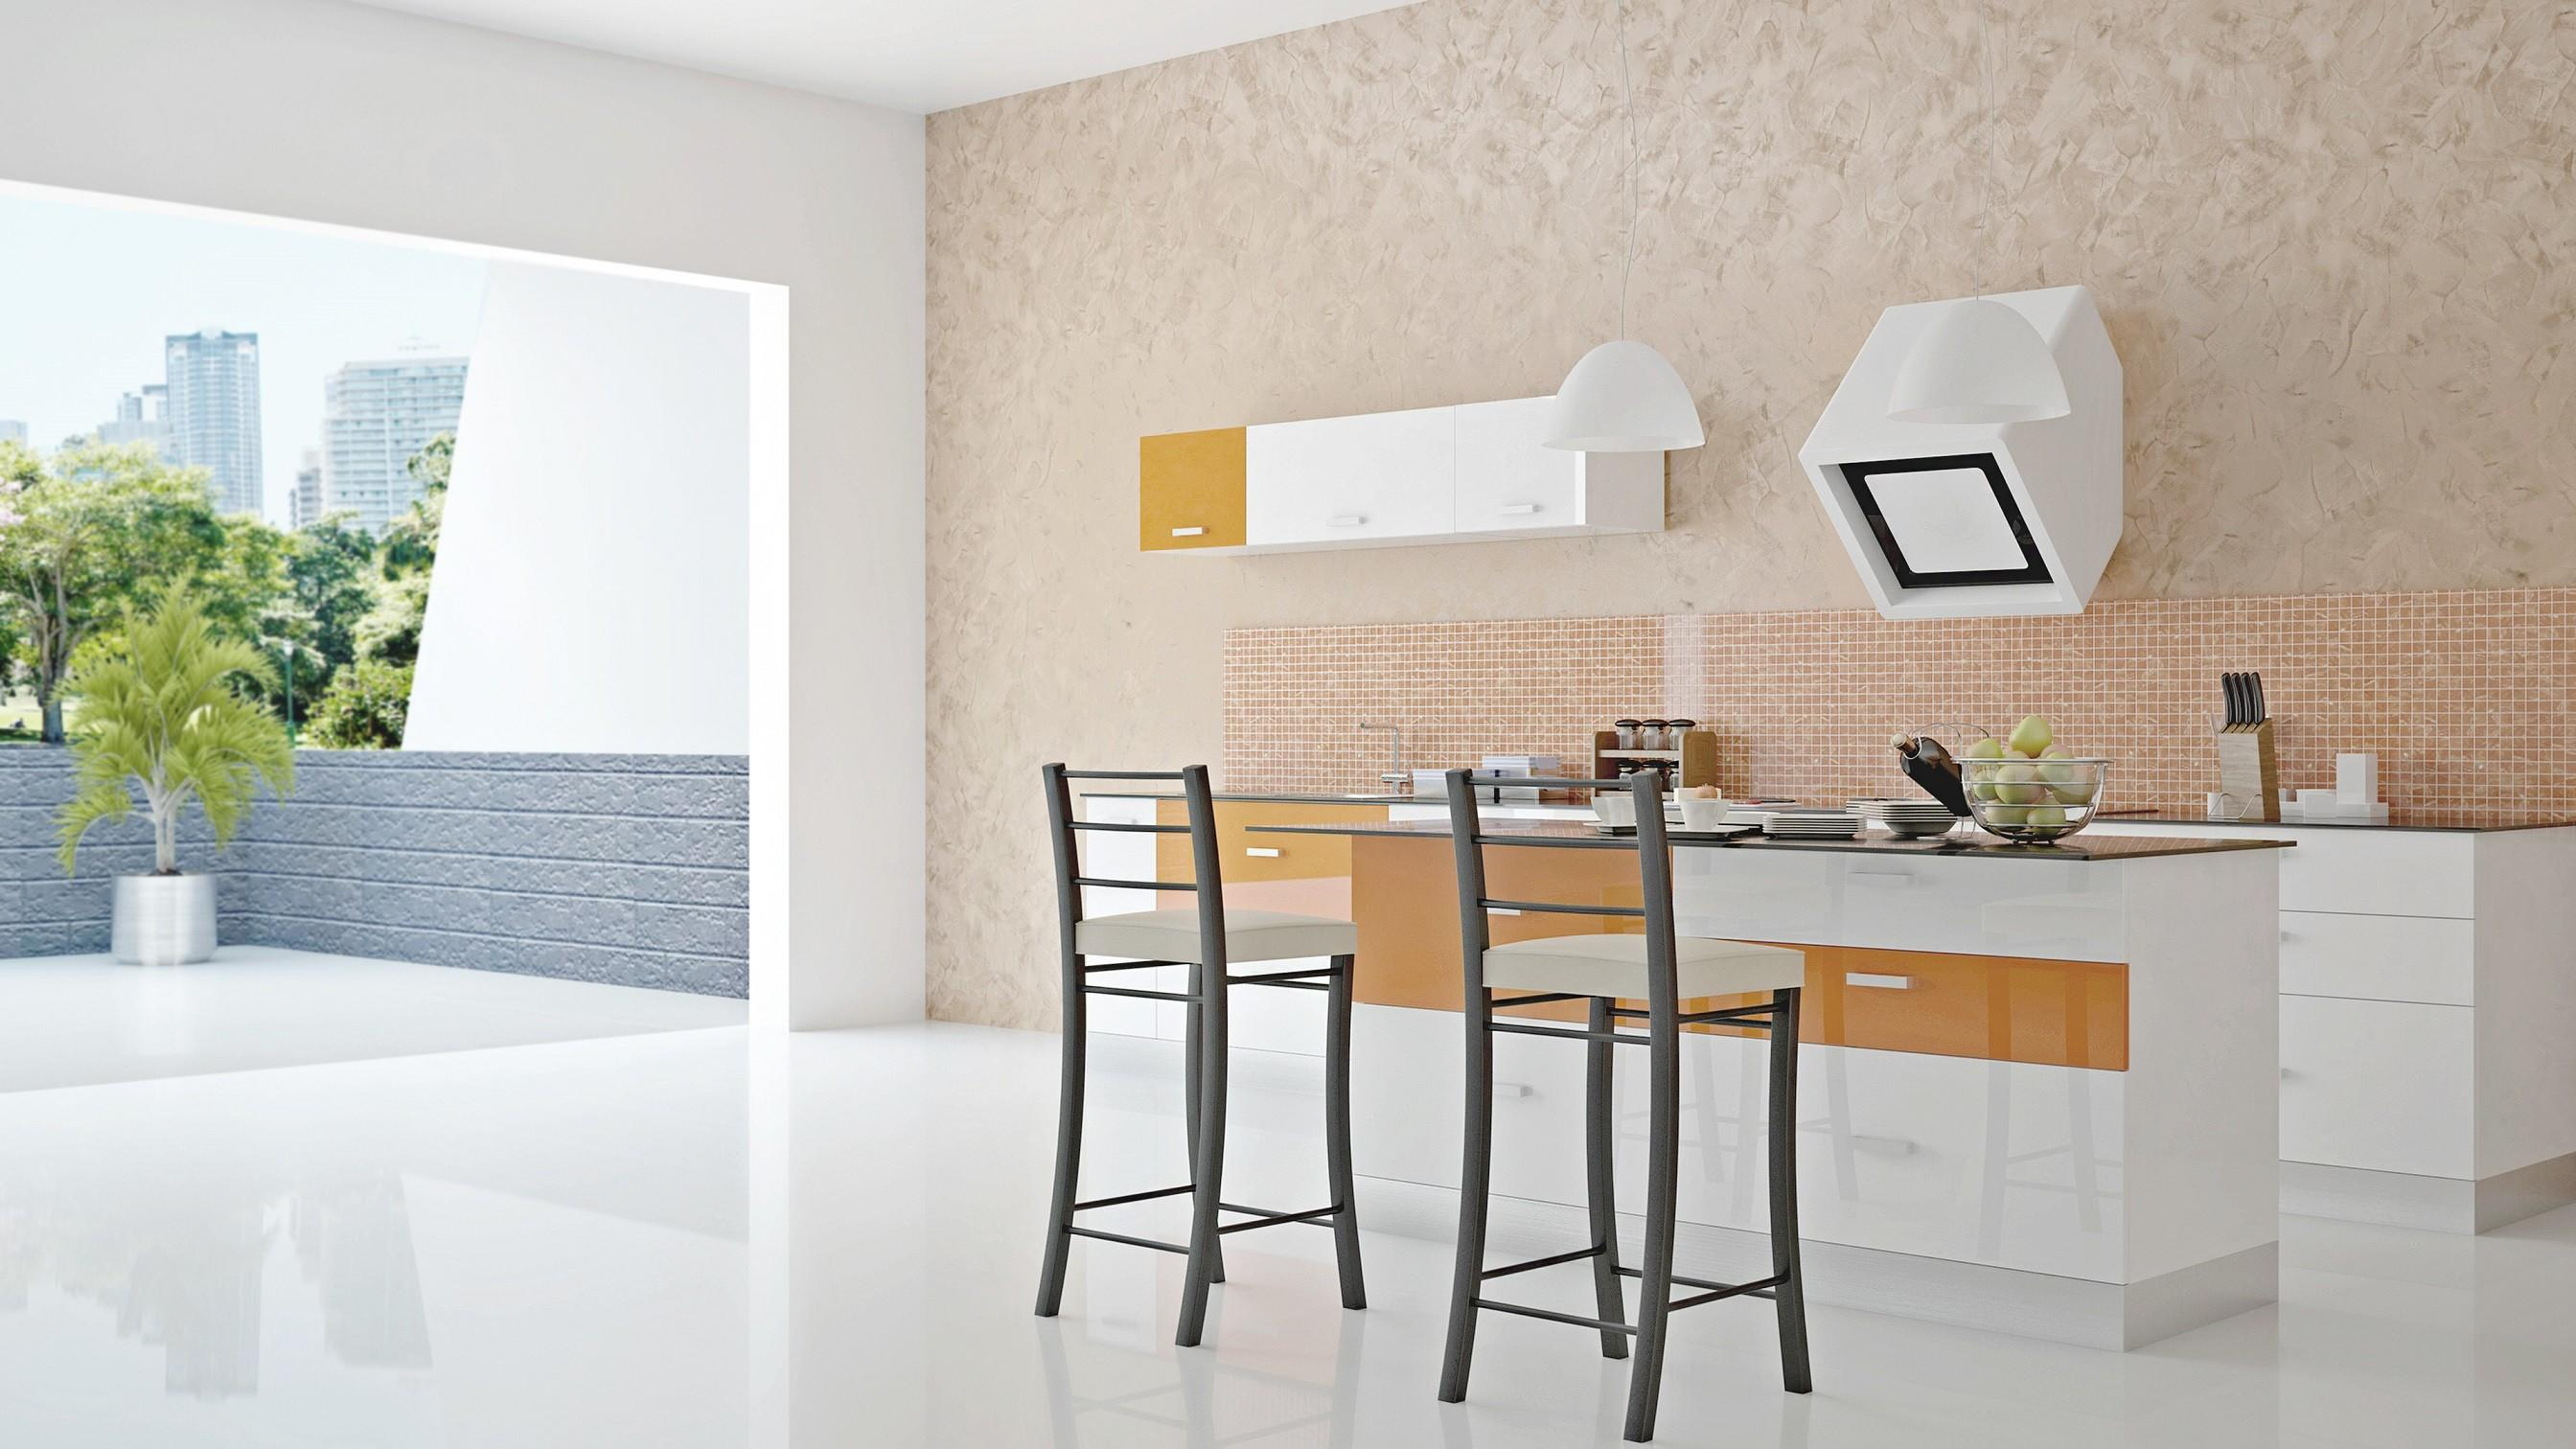 Actyes Sleek Modular Kitchen System One Would